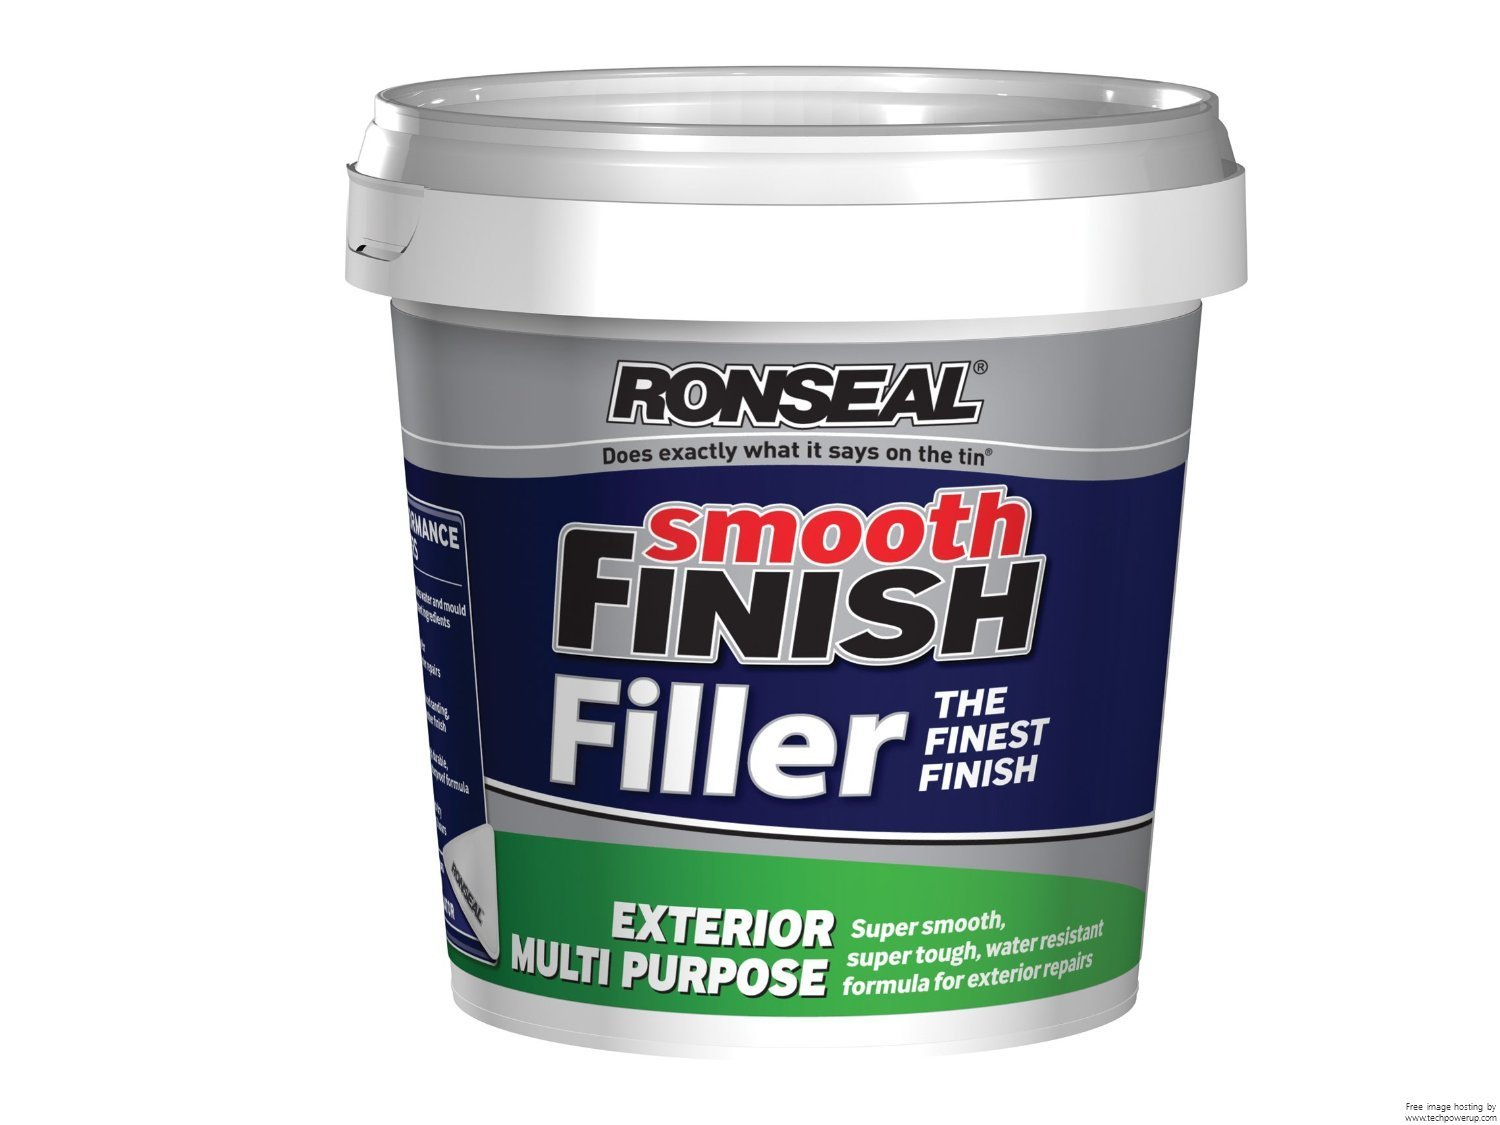 Ronseal - Smooth Finish Exterior Multi Purpose Ready Mix Filler Tub 1.2 kg 6886450-HHW